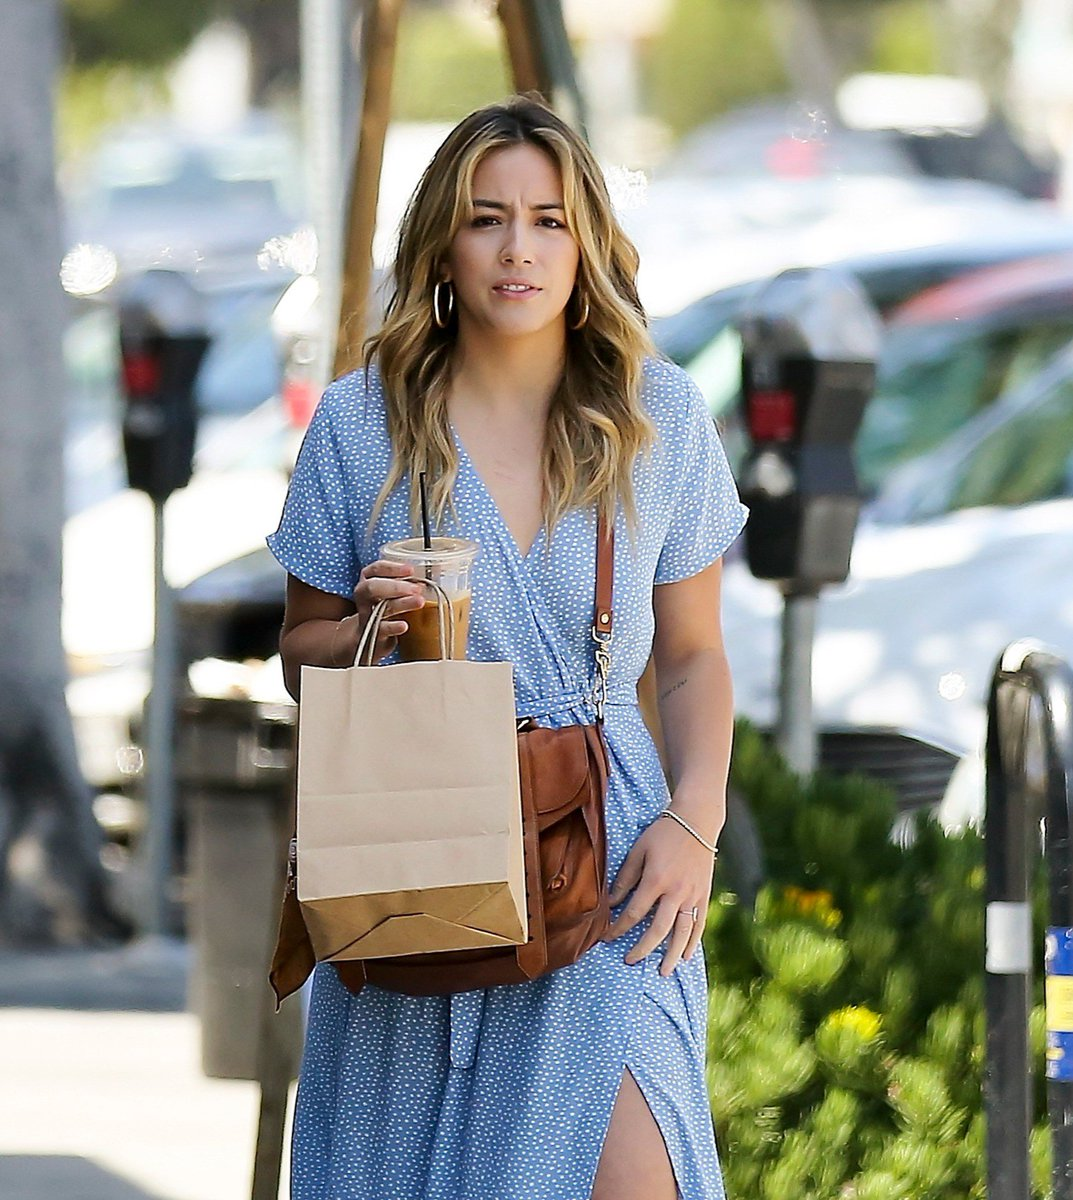 📷| Chloe Bennet was spotted out shopping in a blue dress in Los Angeles GORGEOUS!